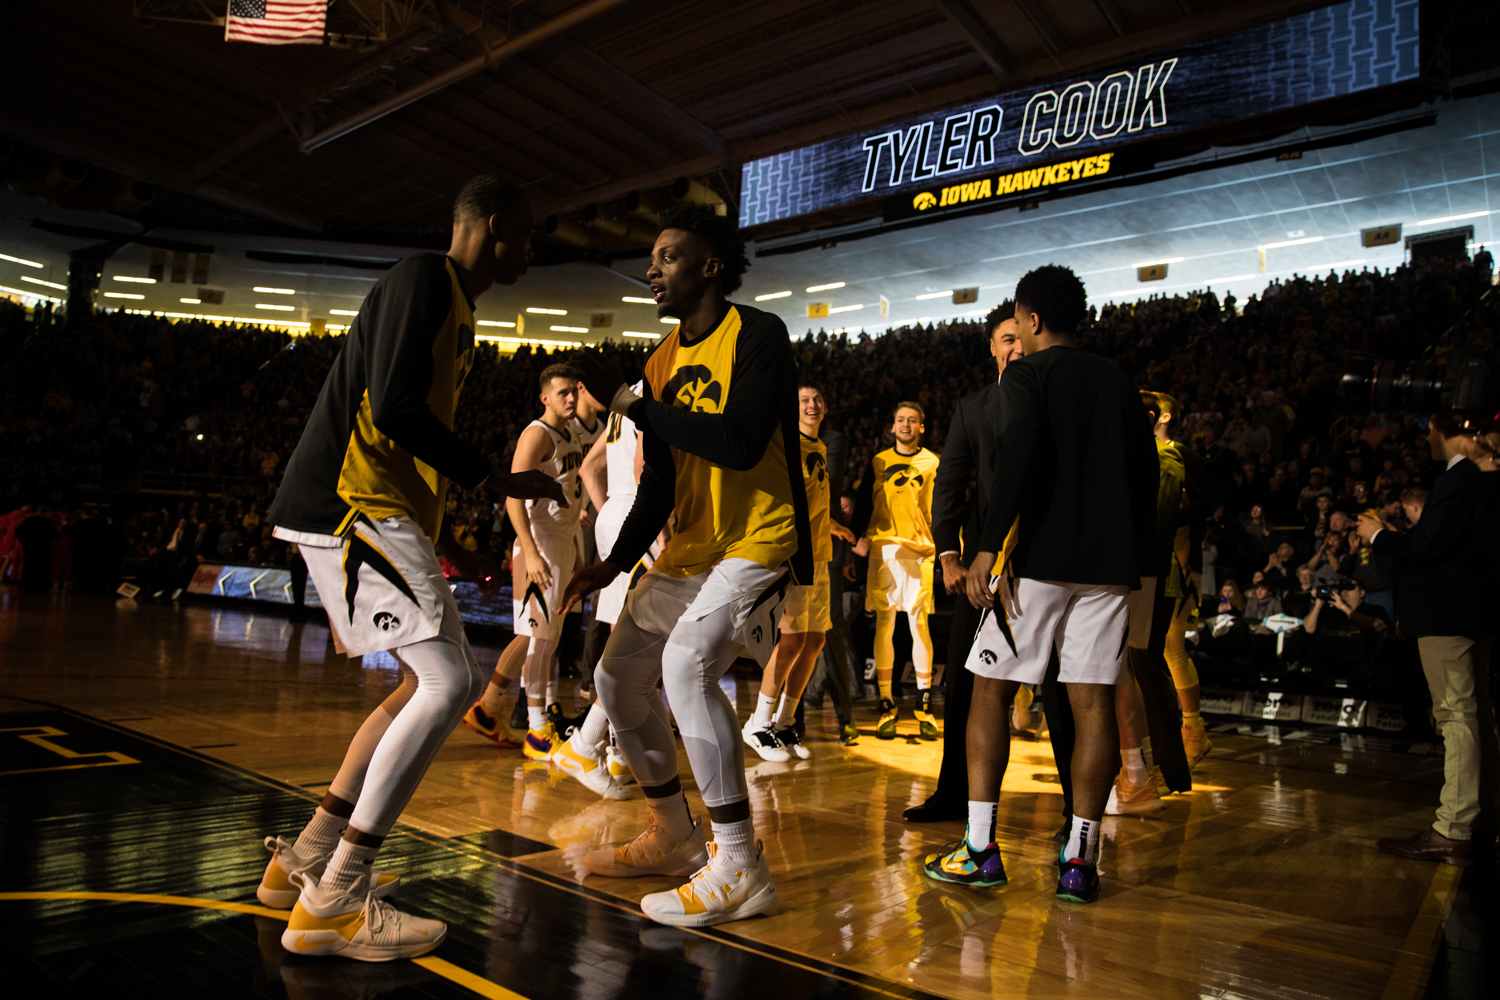 Tyler+Cook+is+introduced+during+a+men%27s+basketball+matchup+between+Ohio+State+and+Iowa+at+Carver-Hawkeye+Arena+on+Saturday%2C+January+12%2C+2019.+The+Hawkeyes+defeated+the+Buckeyes%2C+72-62.